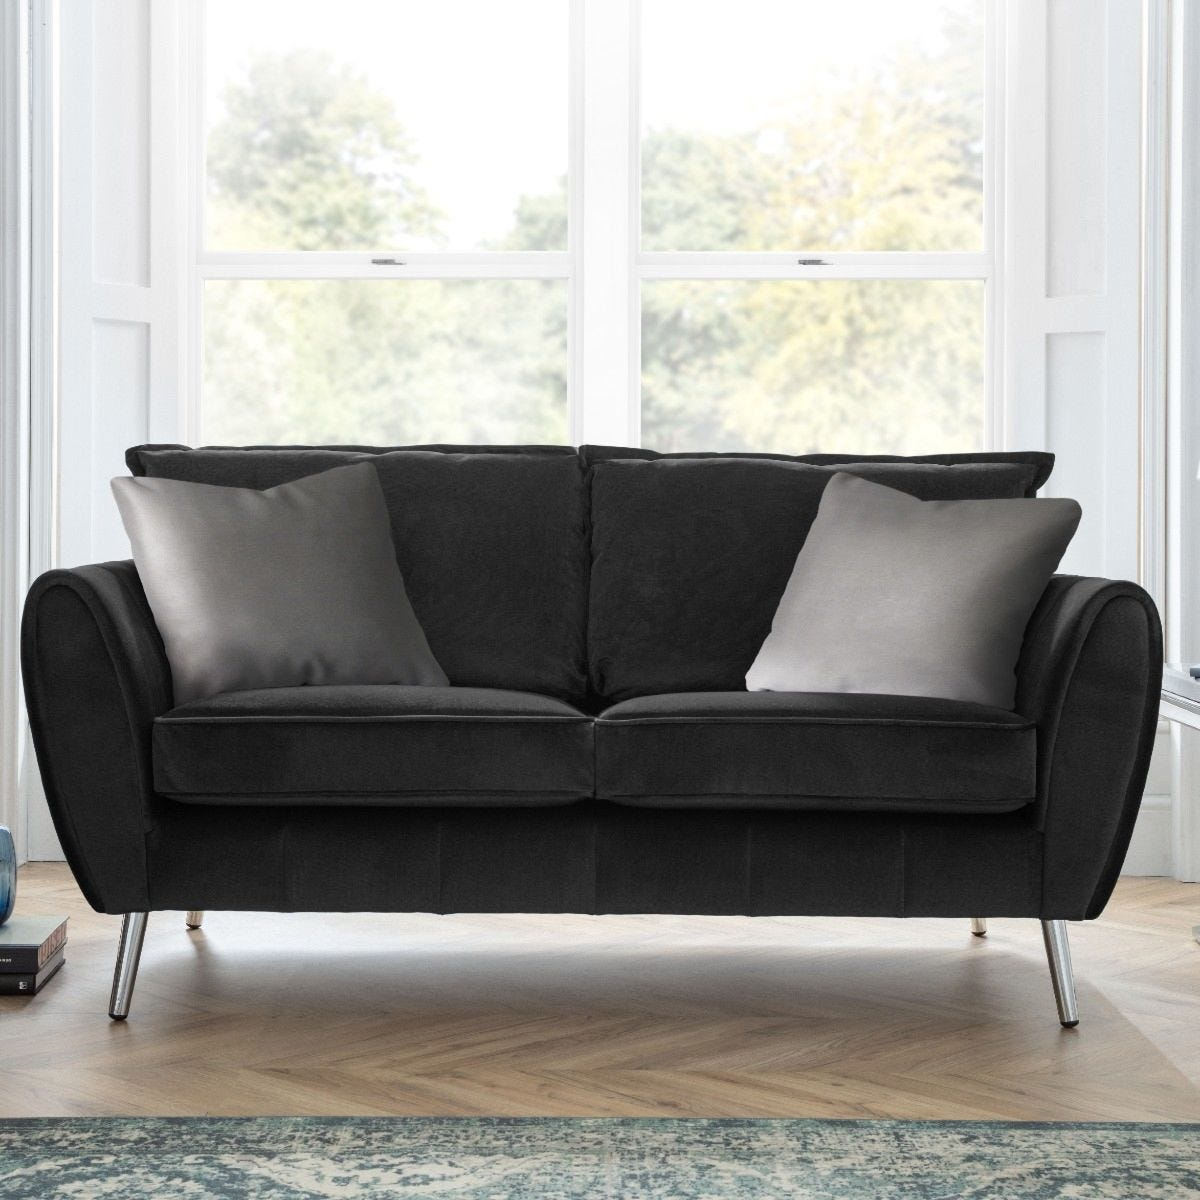 Toulouse 2 Seater Sofa Malta Black